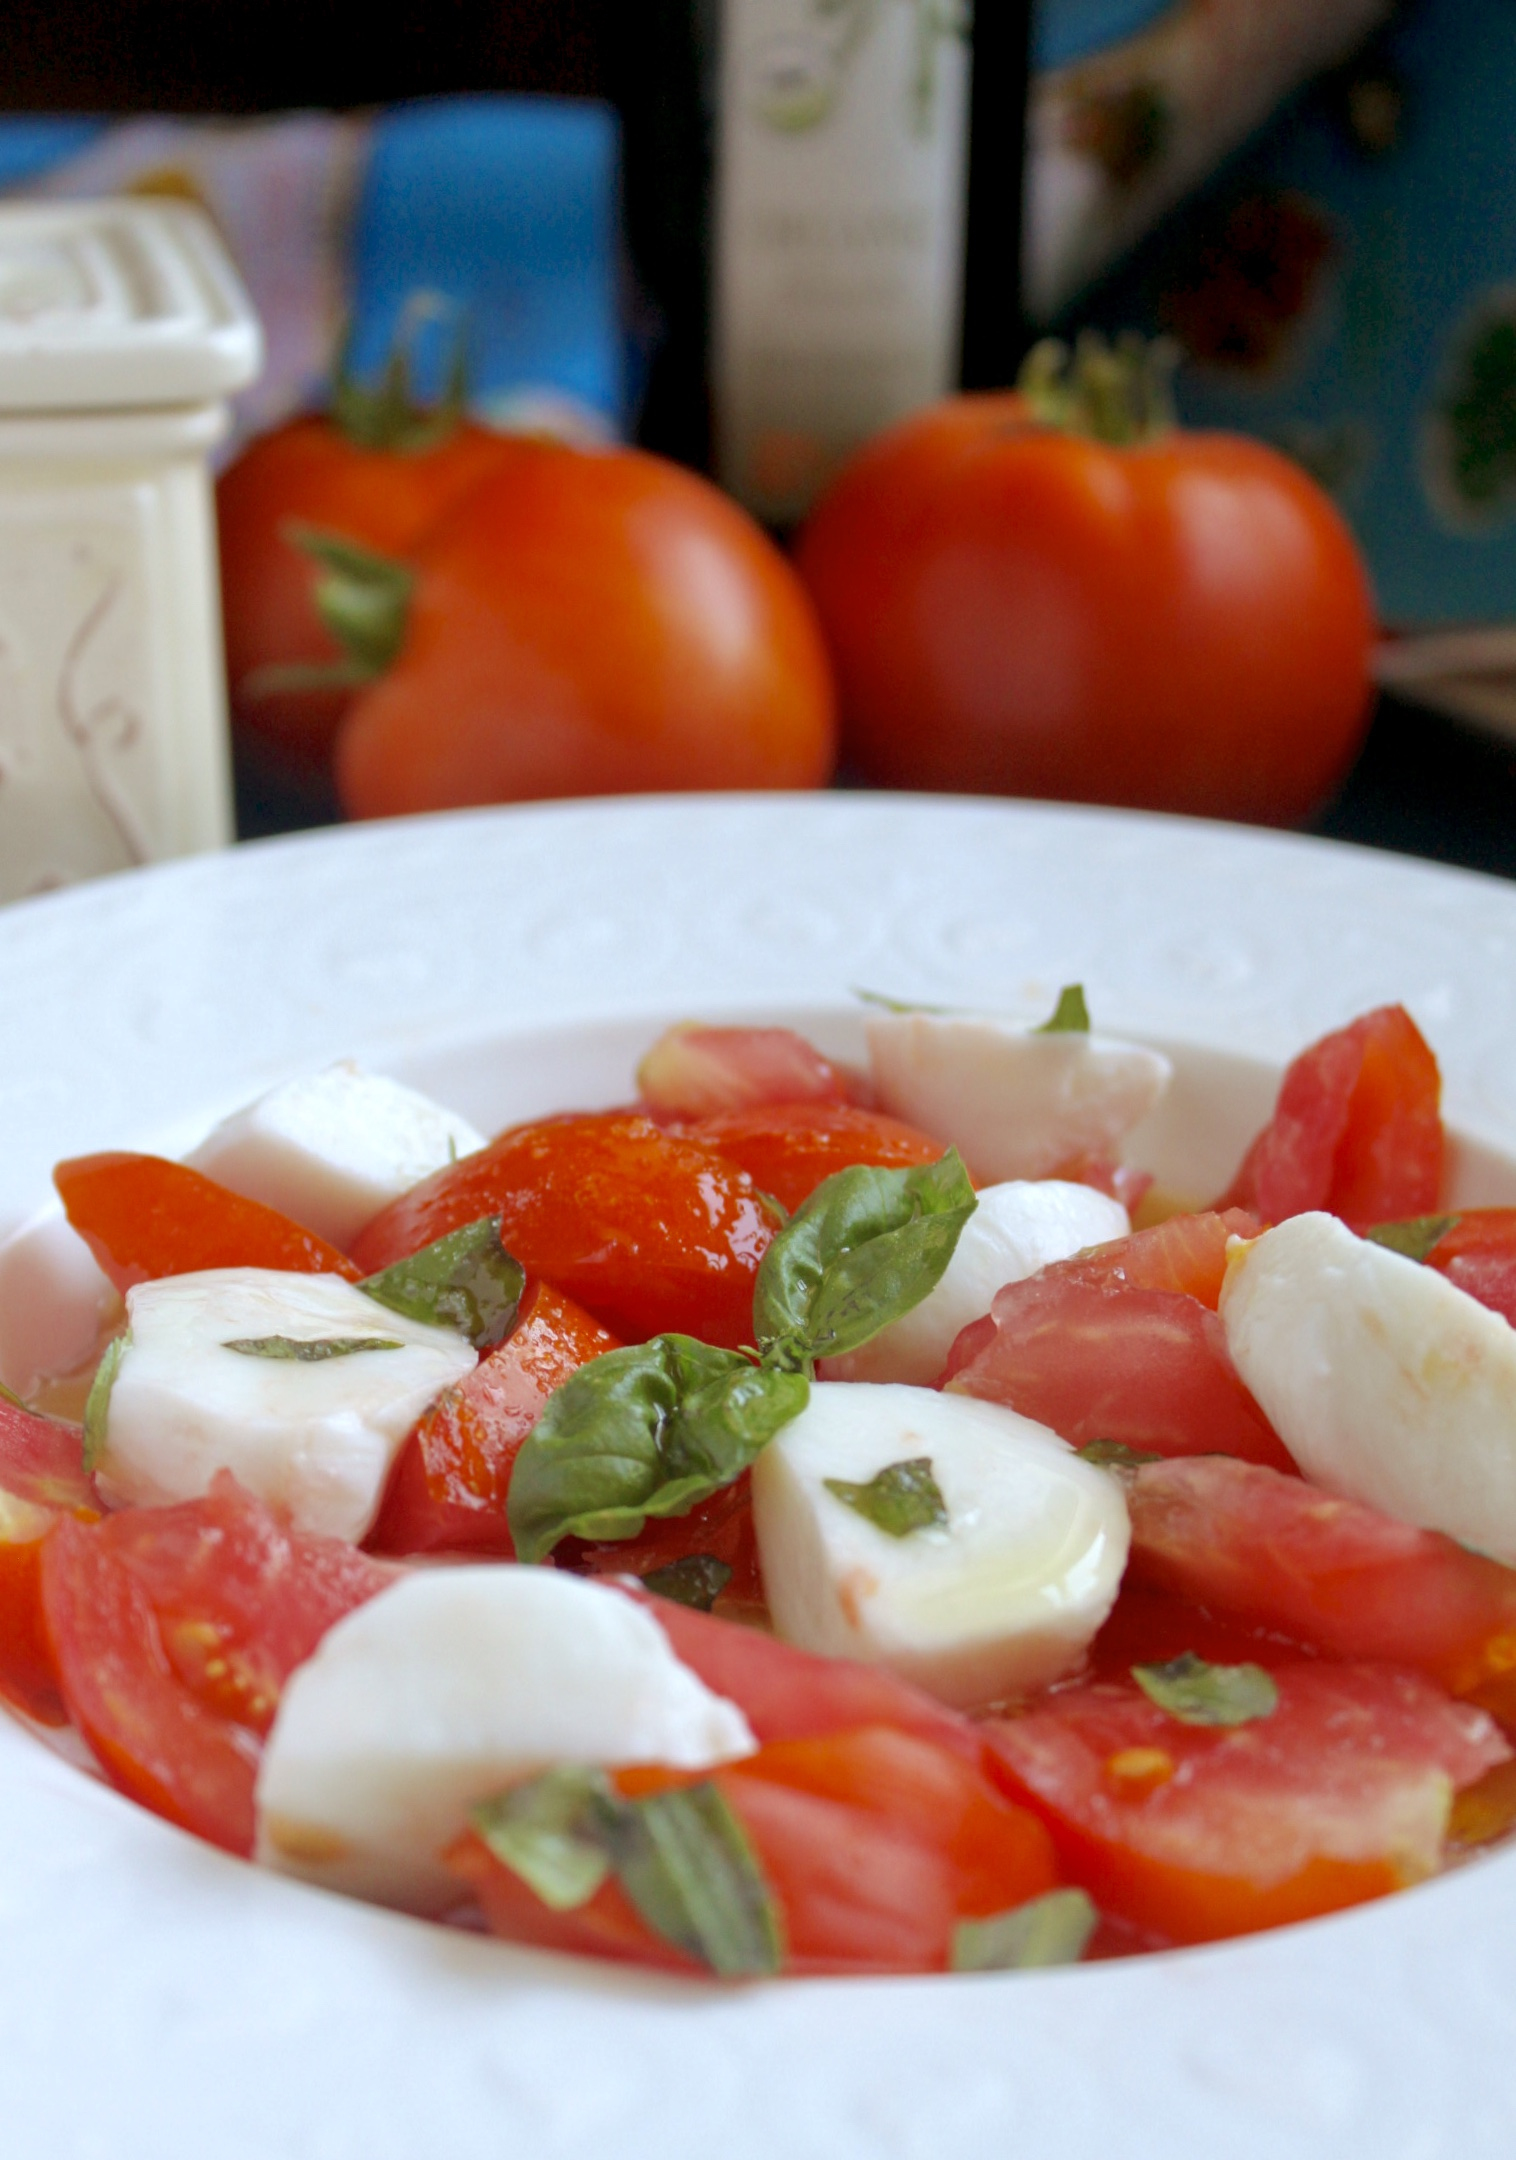 caprese salad with tomatoes in background